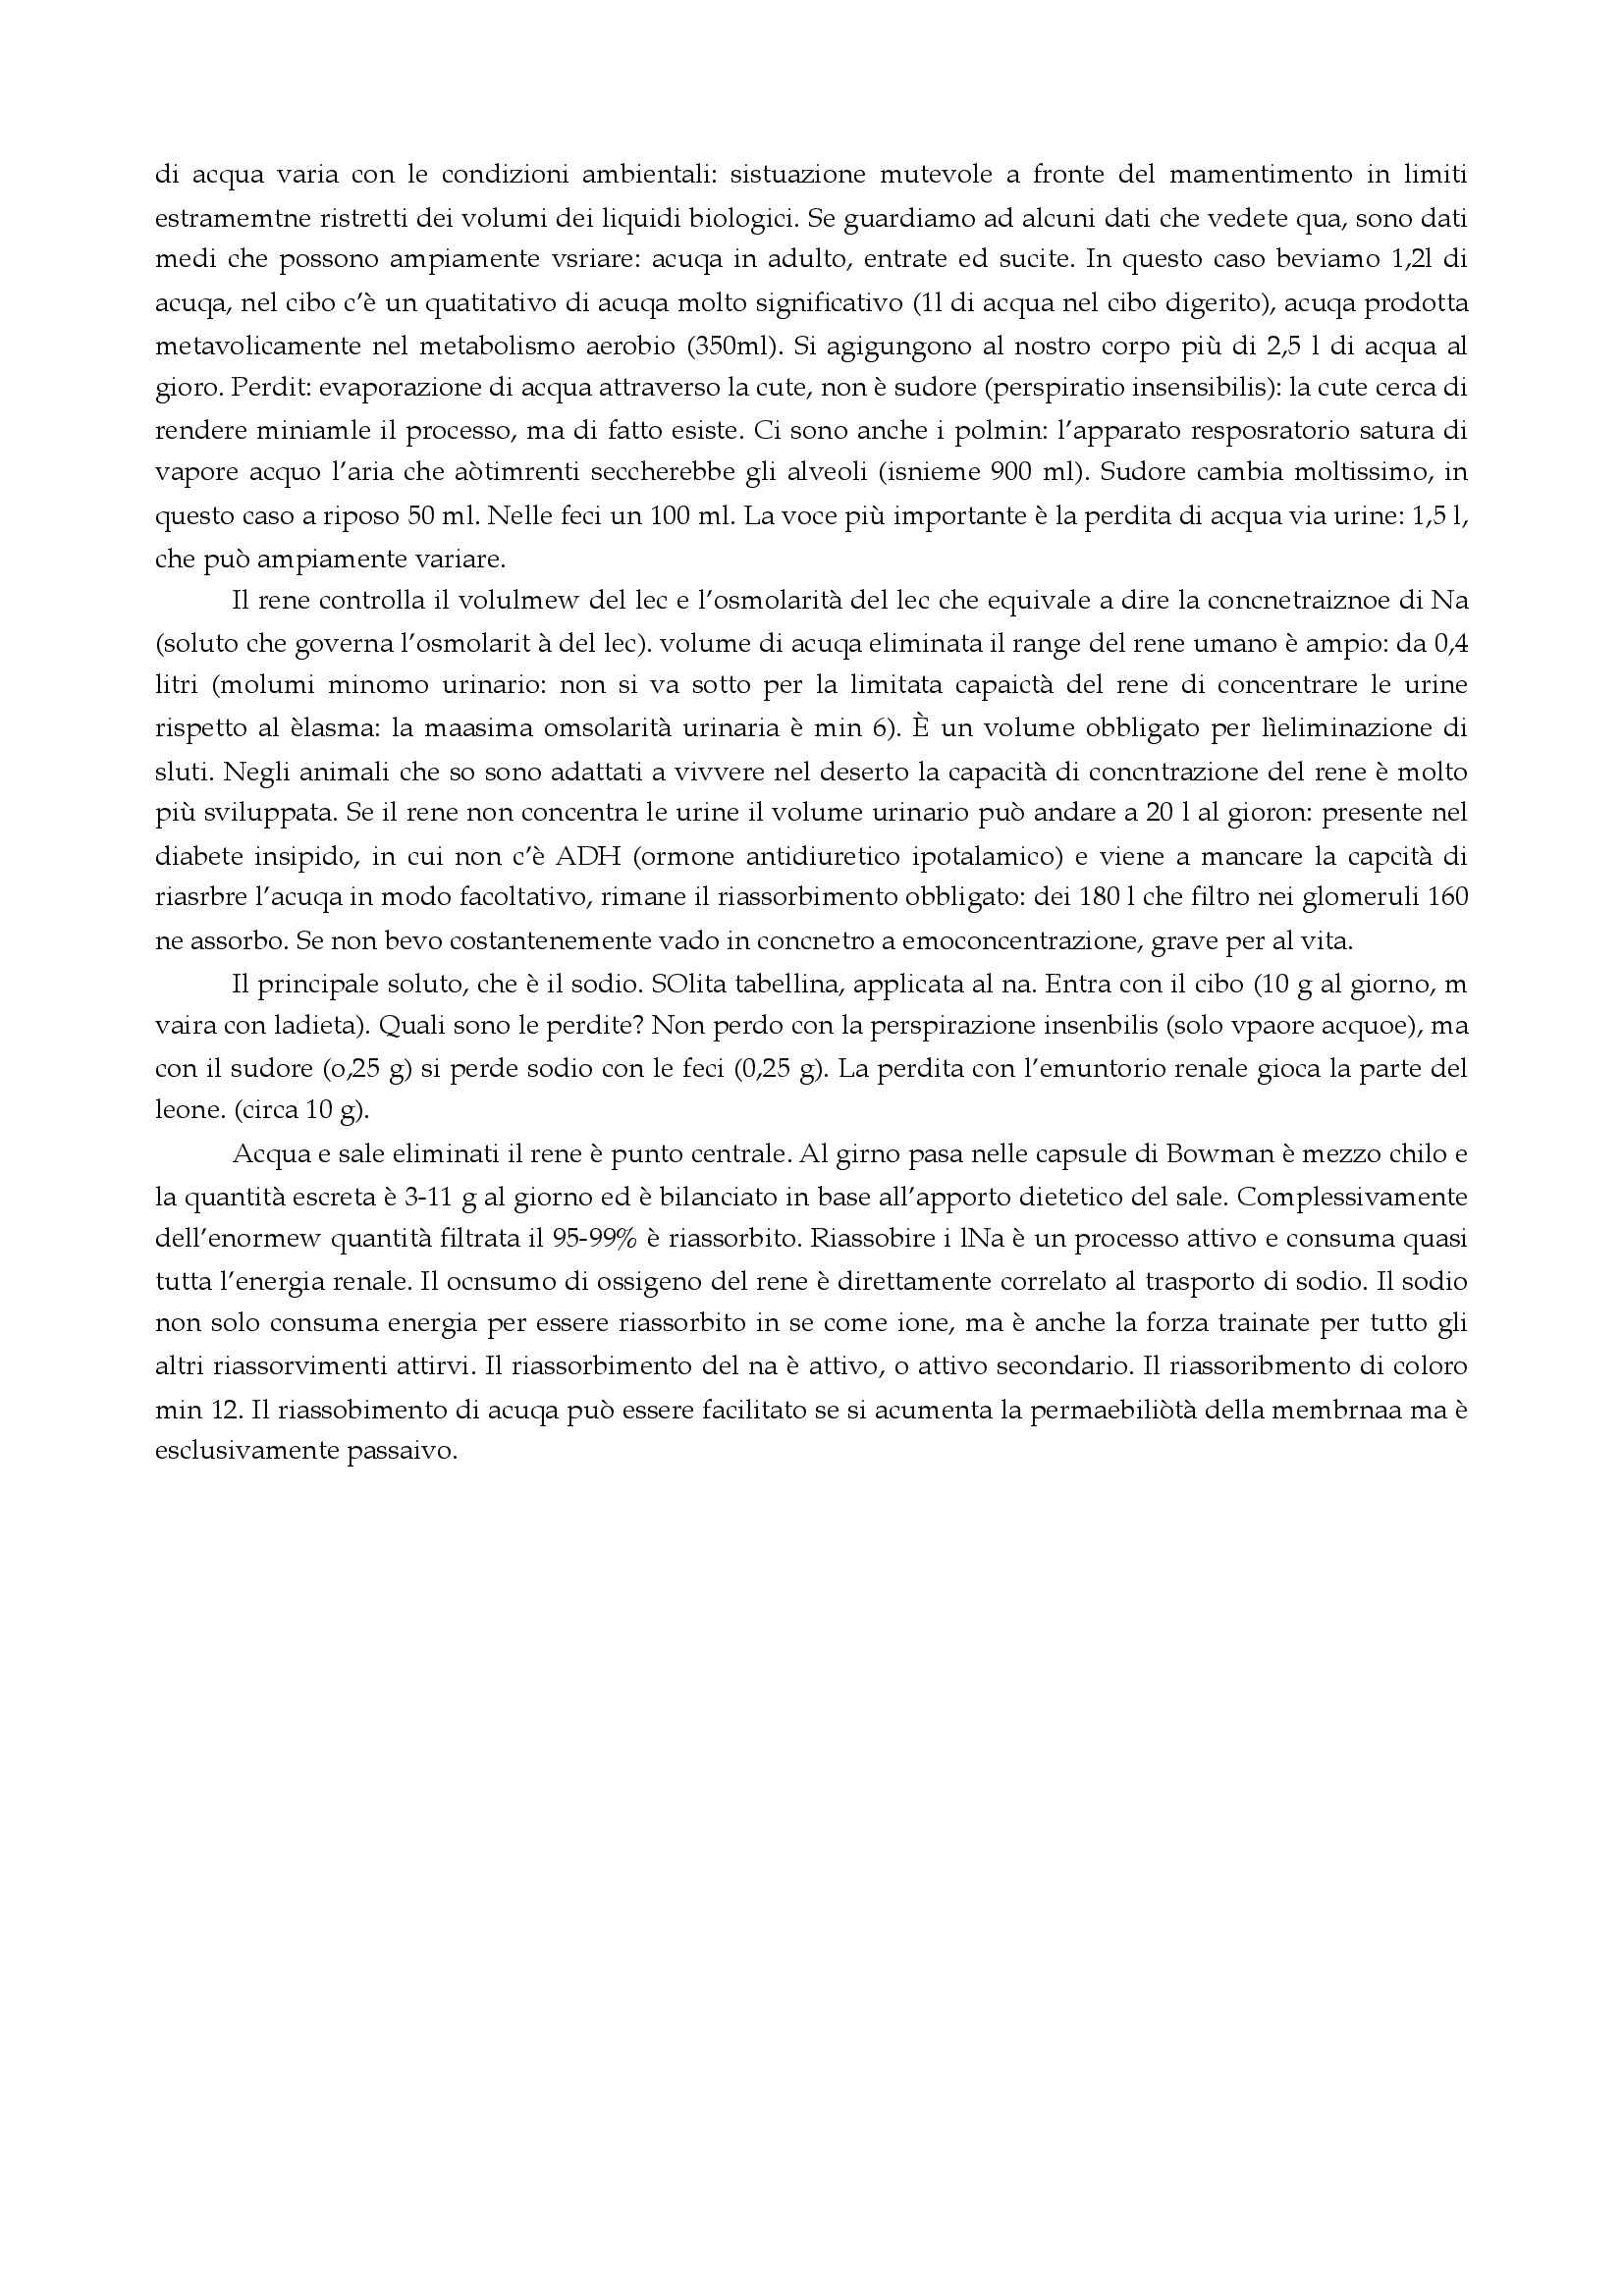 Fisiologia - fisiologia renale Pag. 56